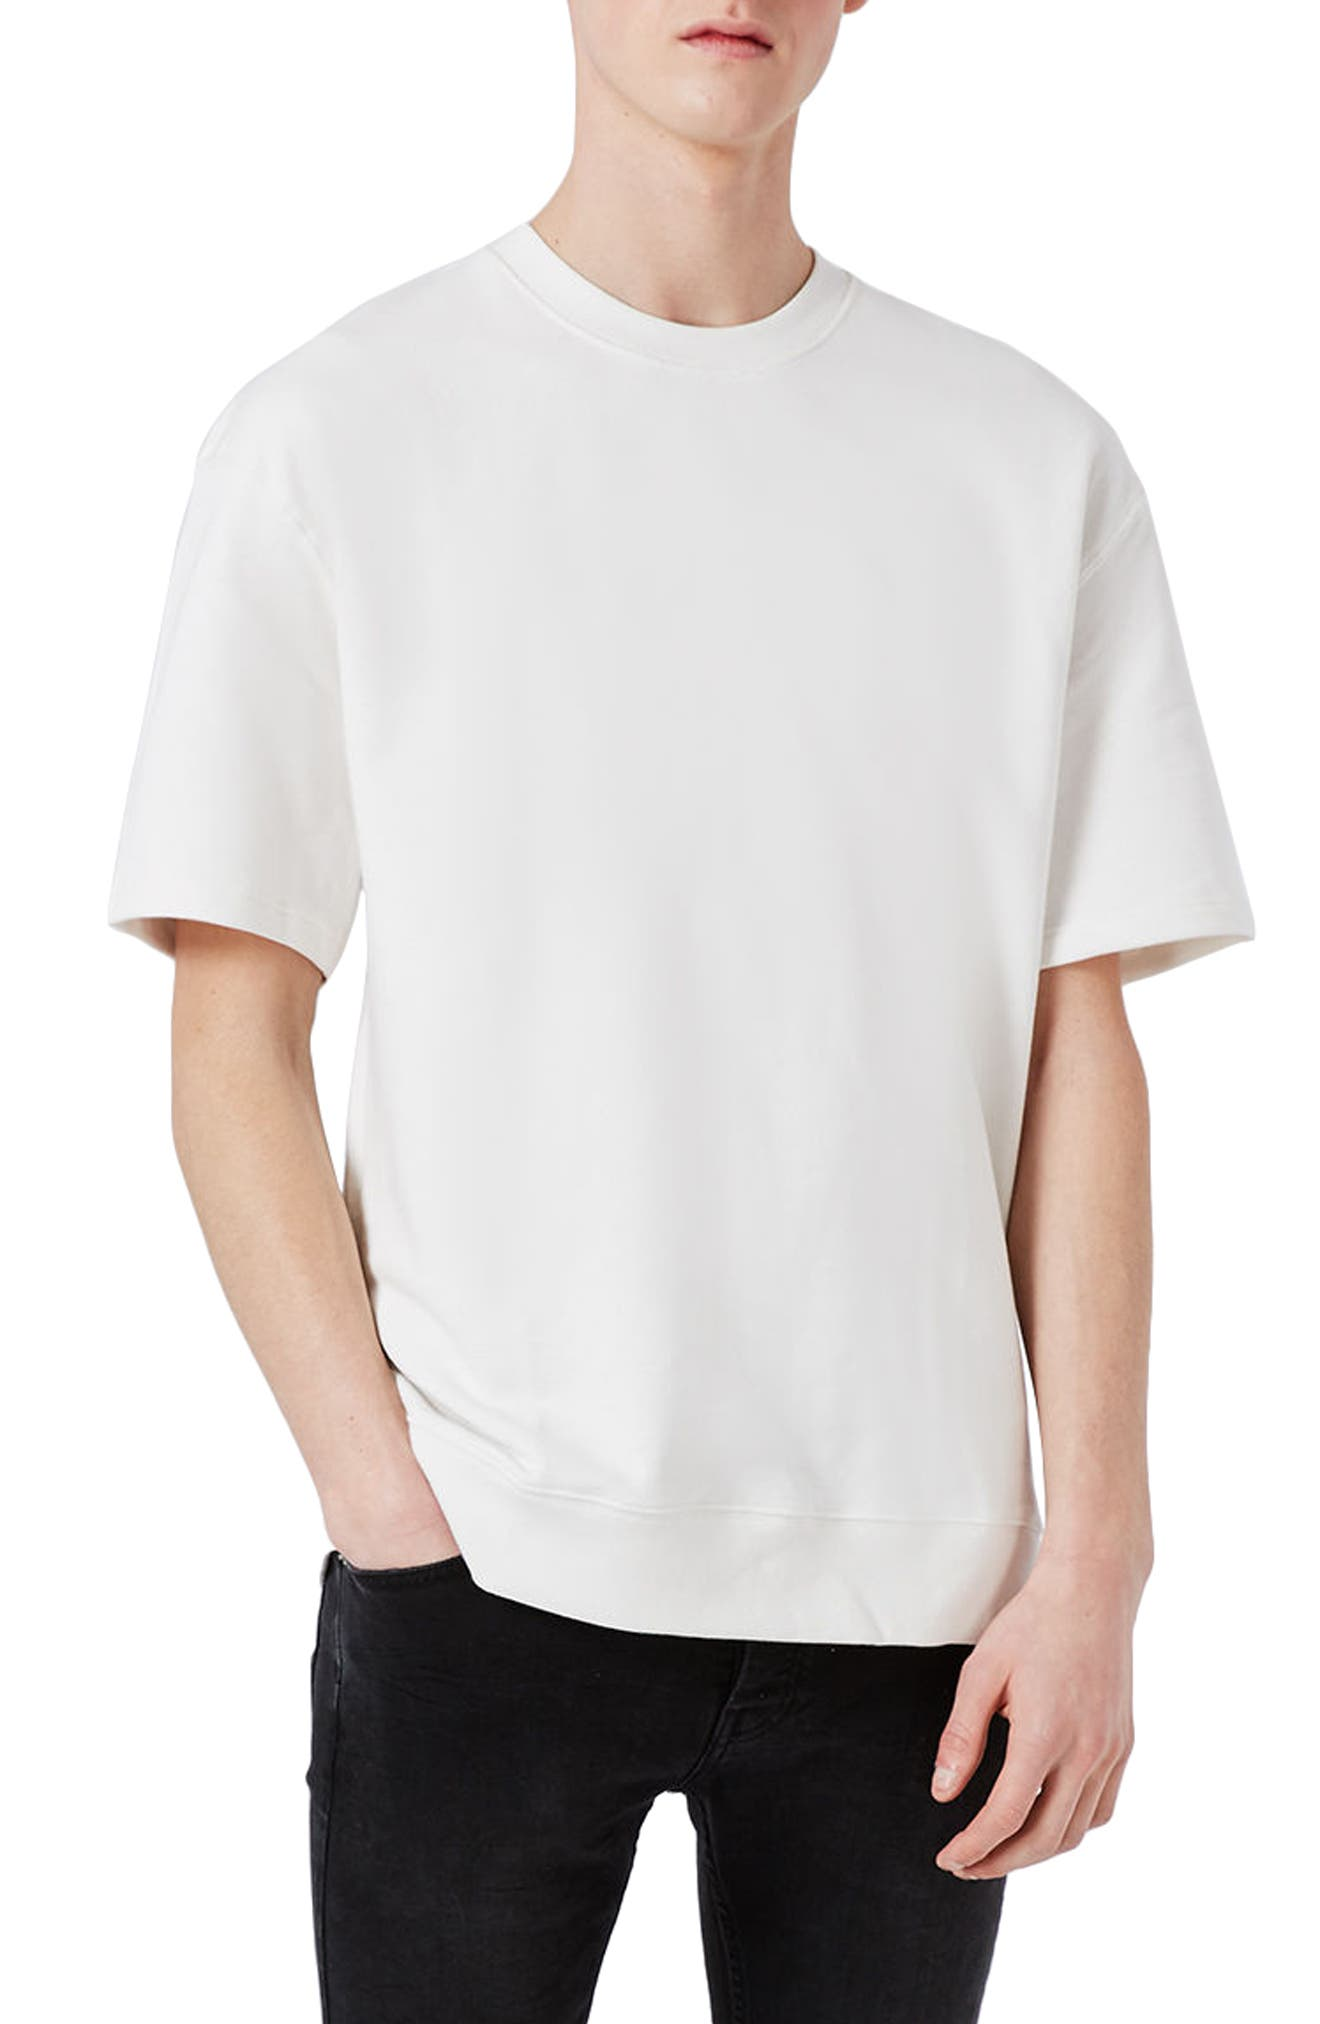 Topman A2 Solution Short Sleeve Sweatshirt